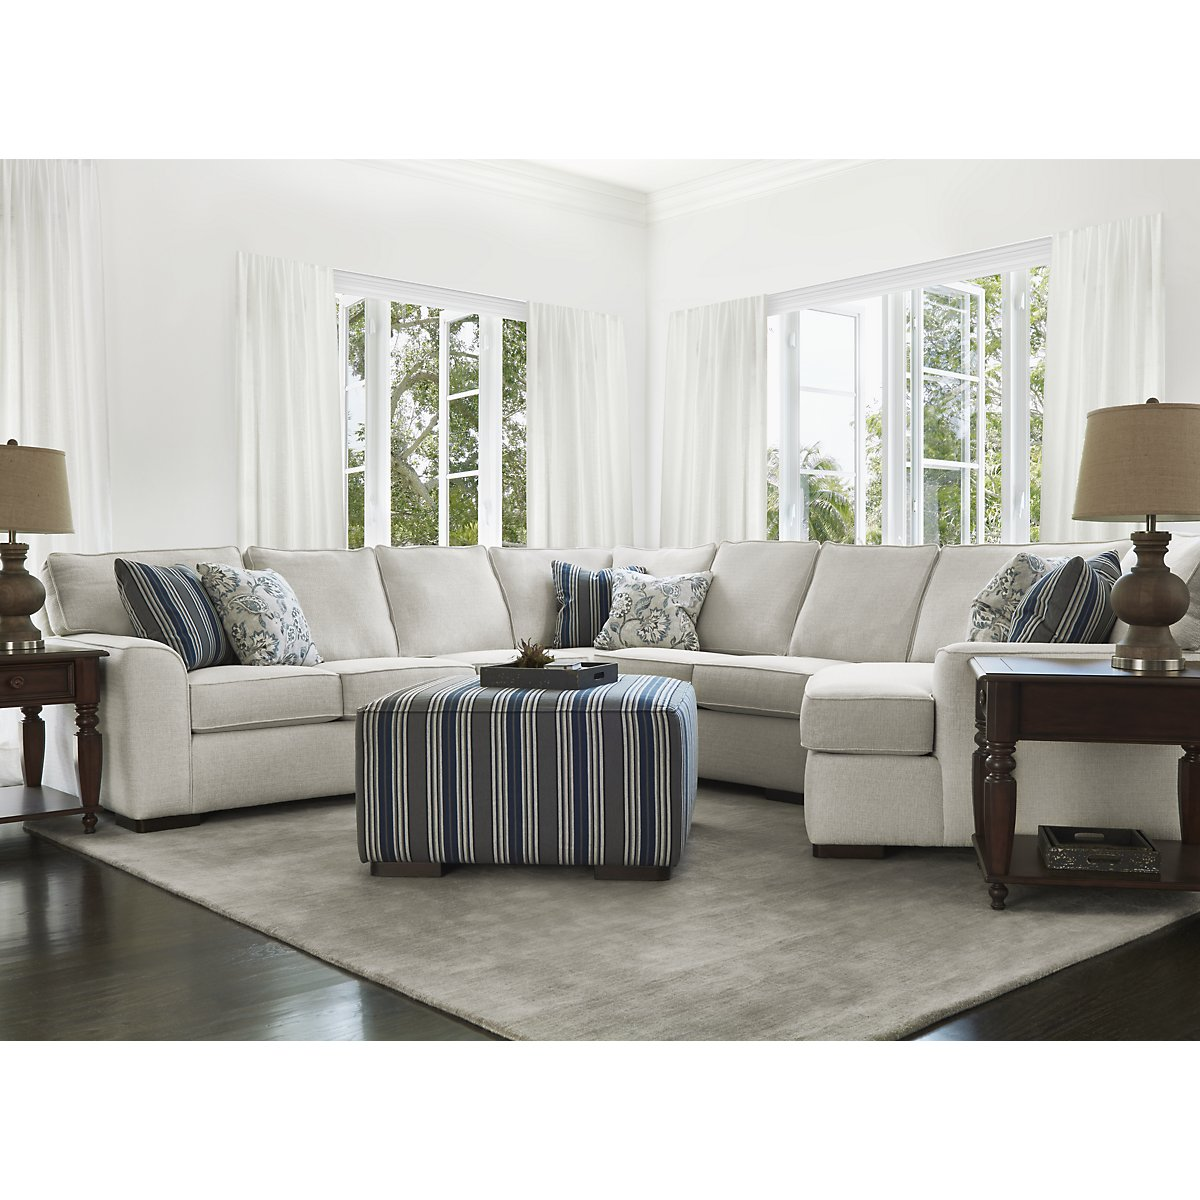 City Furniture: Austin White Fabric Small Right Cuddler ...